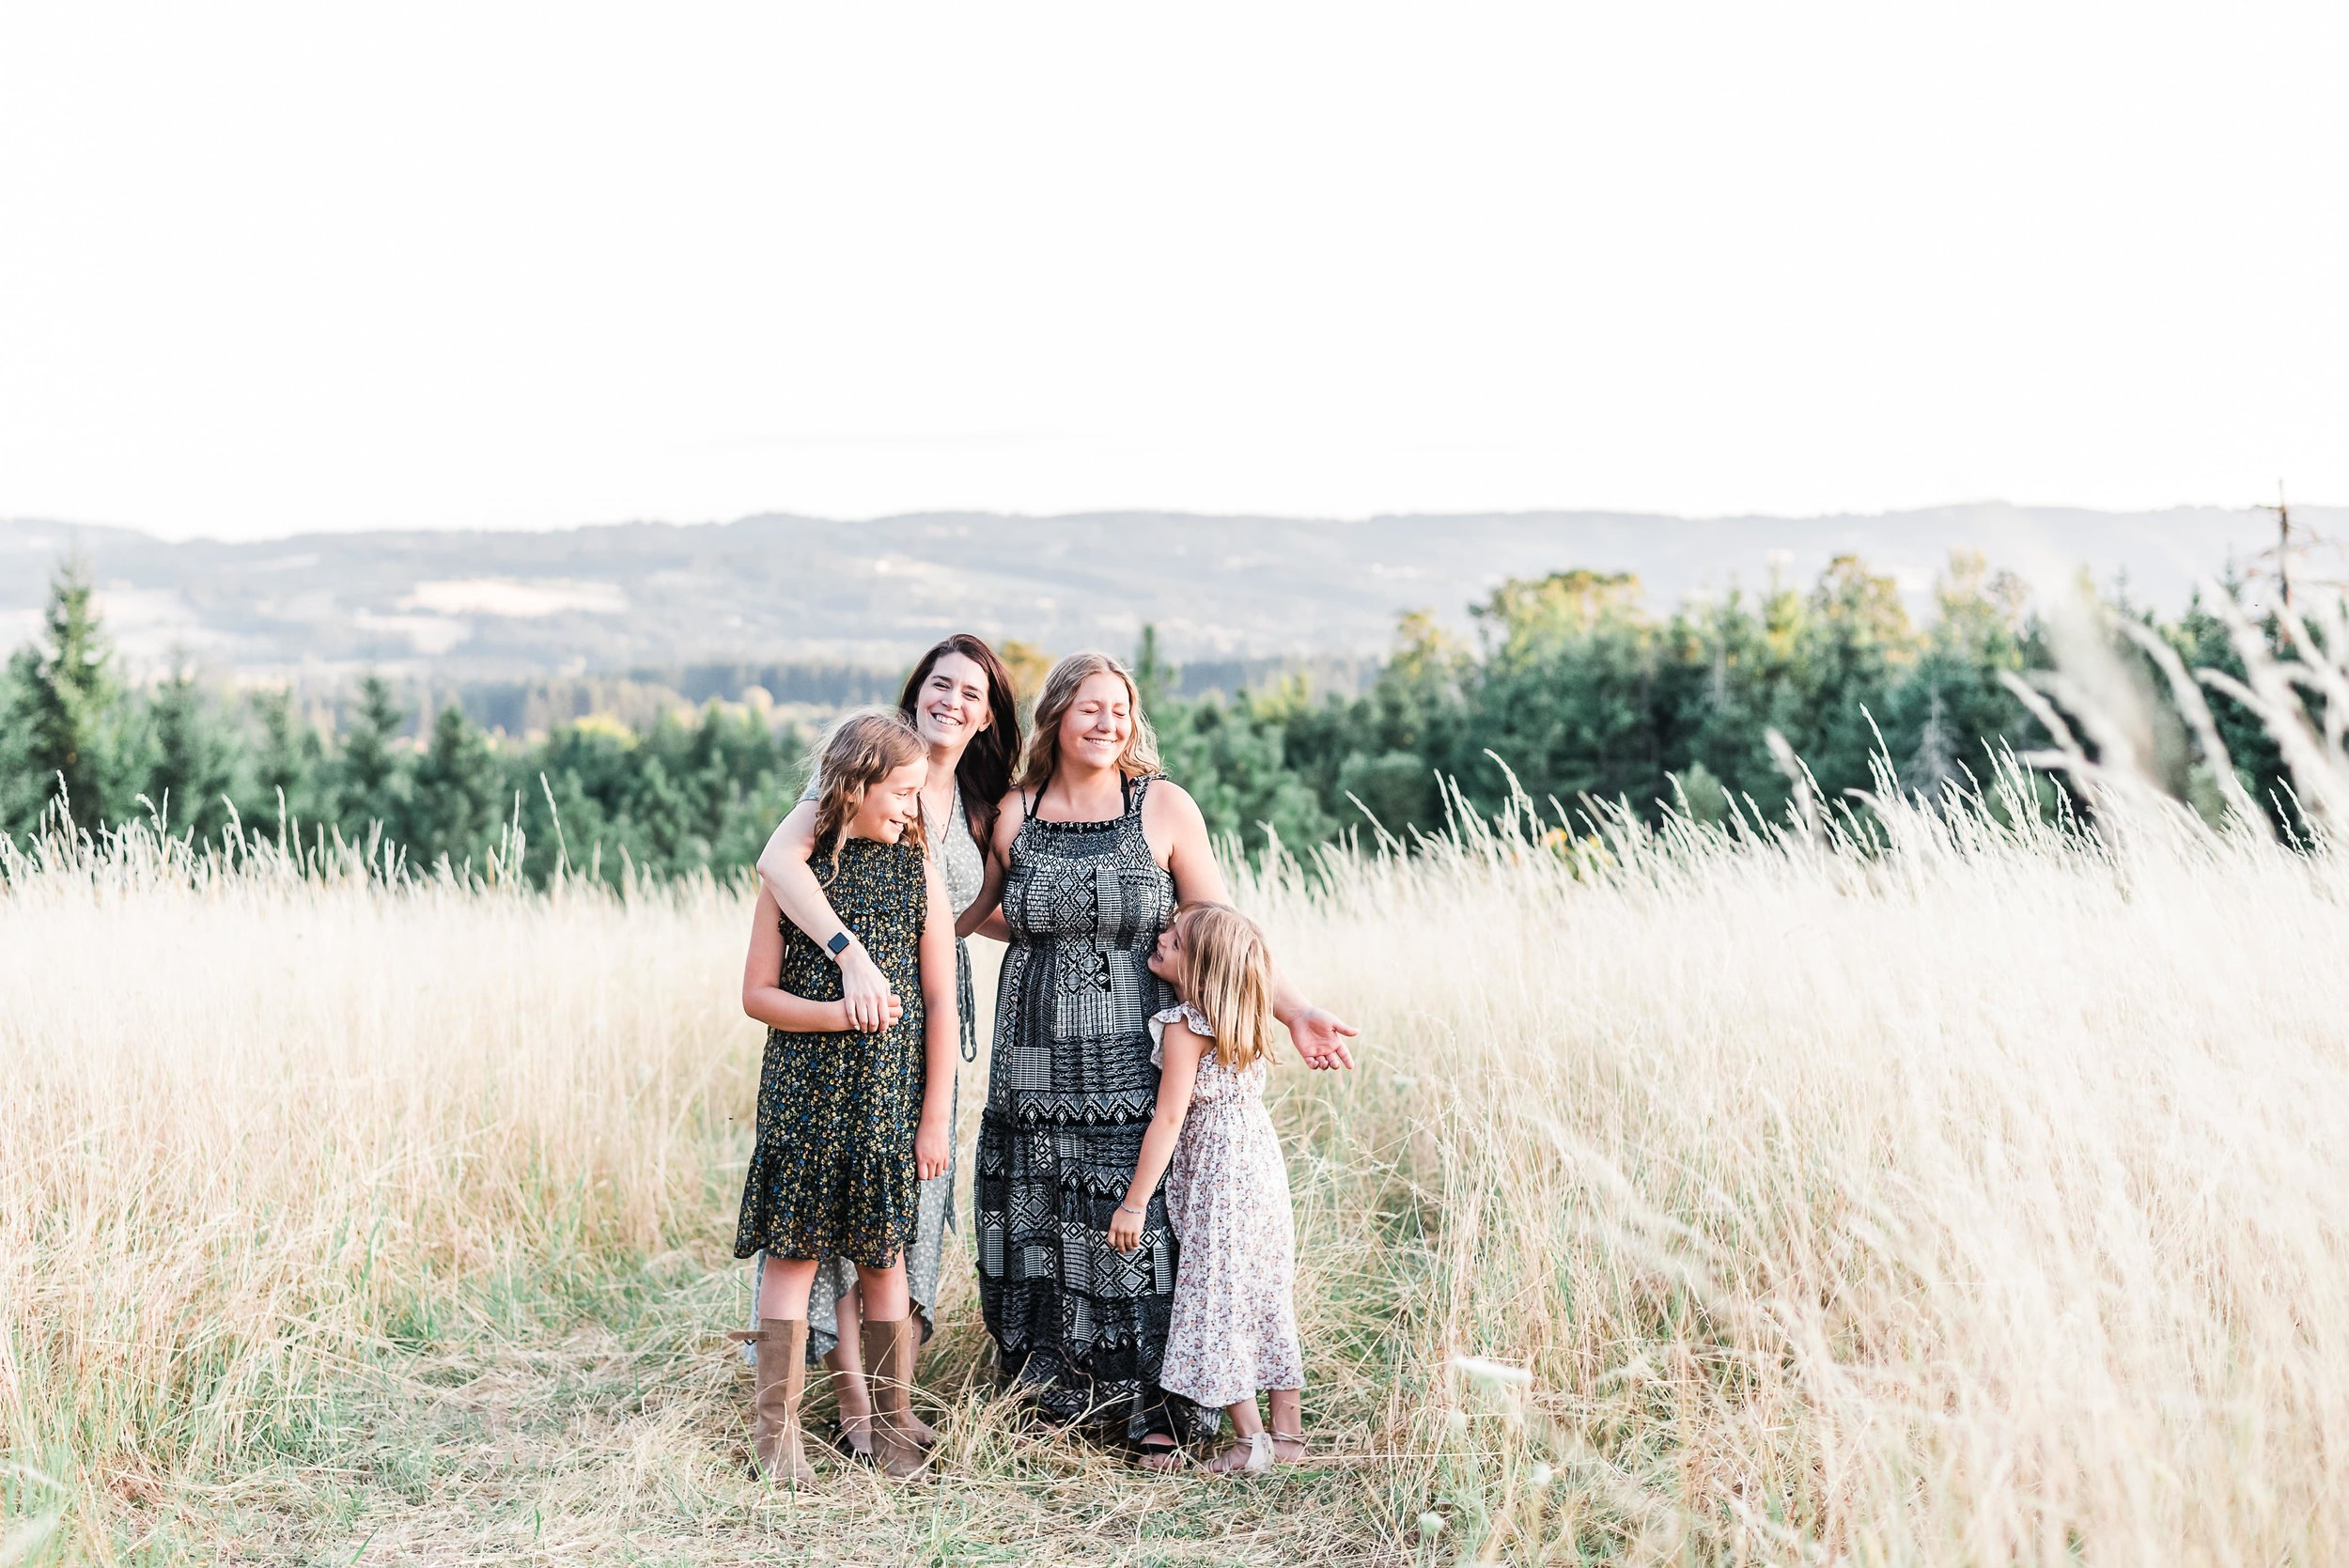 Summer golden hour family portraits in Portland, Oregon. Playful and adventurous family photo inspiration | Pacific Northwest family | Lifestyle family photography, family photos with girls, family photos with daughters | Portland, OR Photographer - Elizabeth Hite Photography